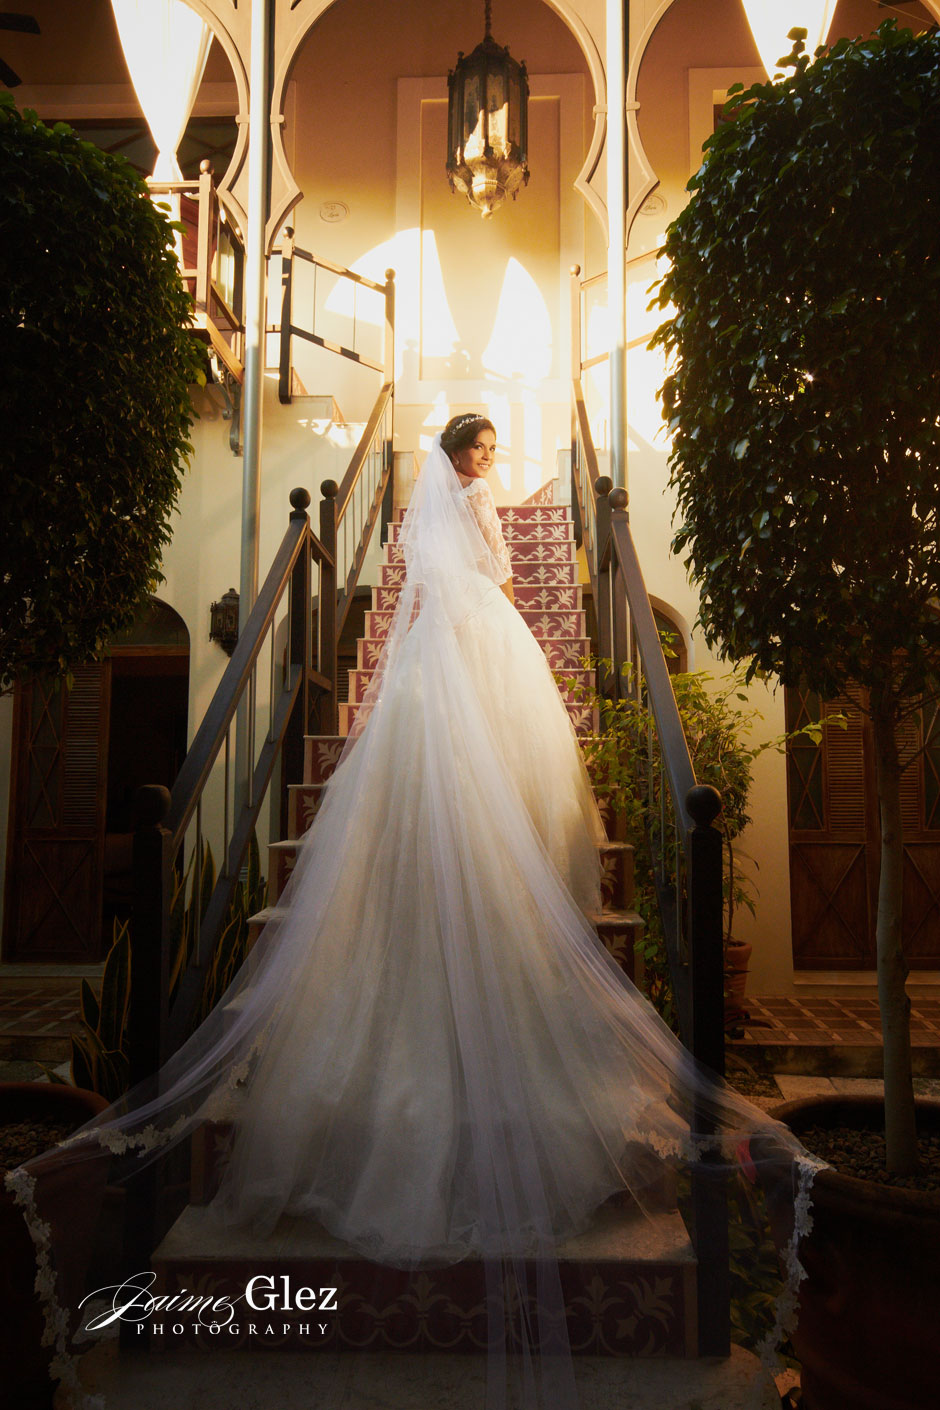 What do you think of this beautiful wedding dress? The bride looked stunning!